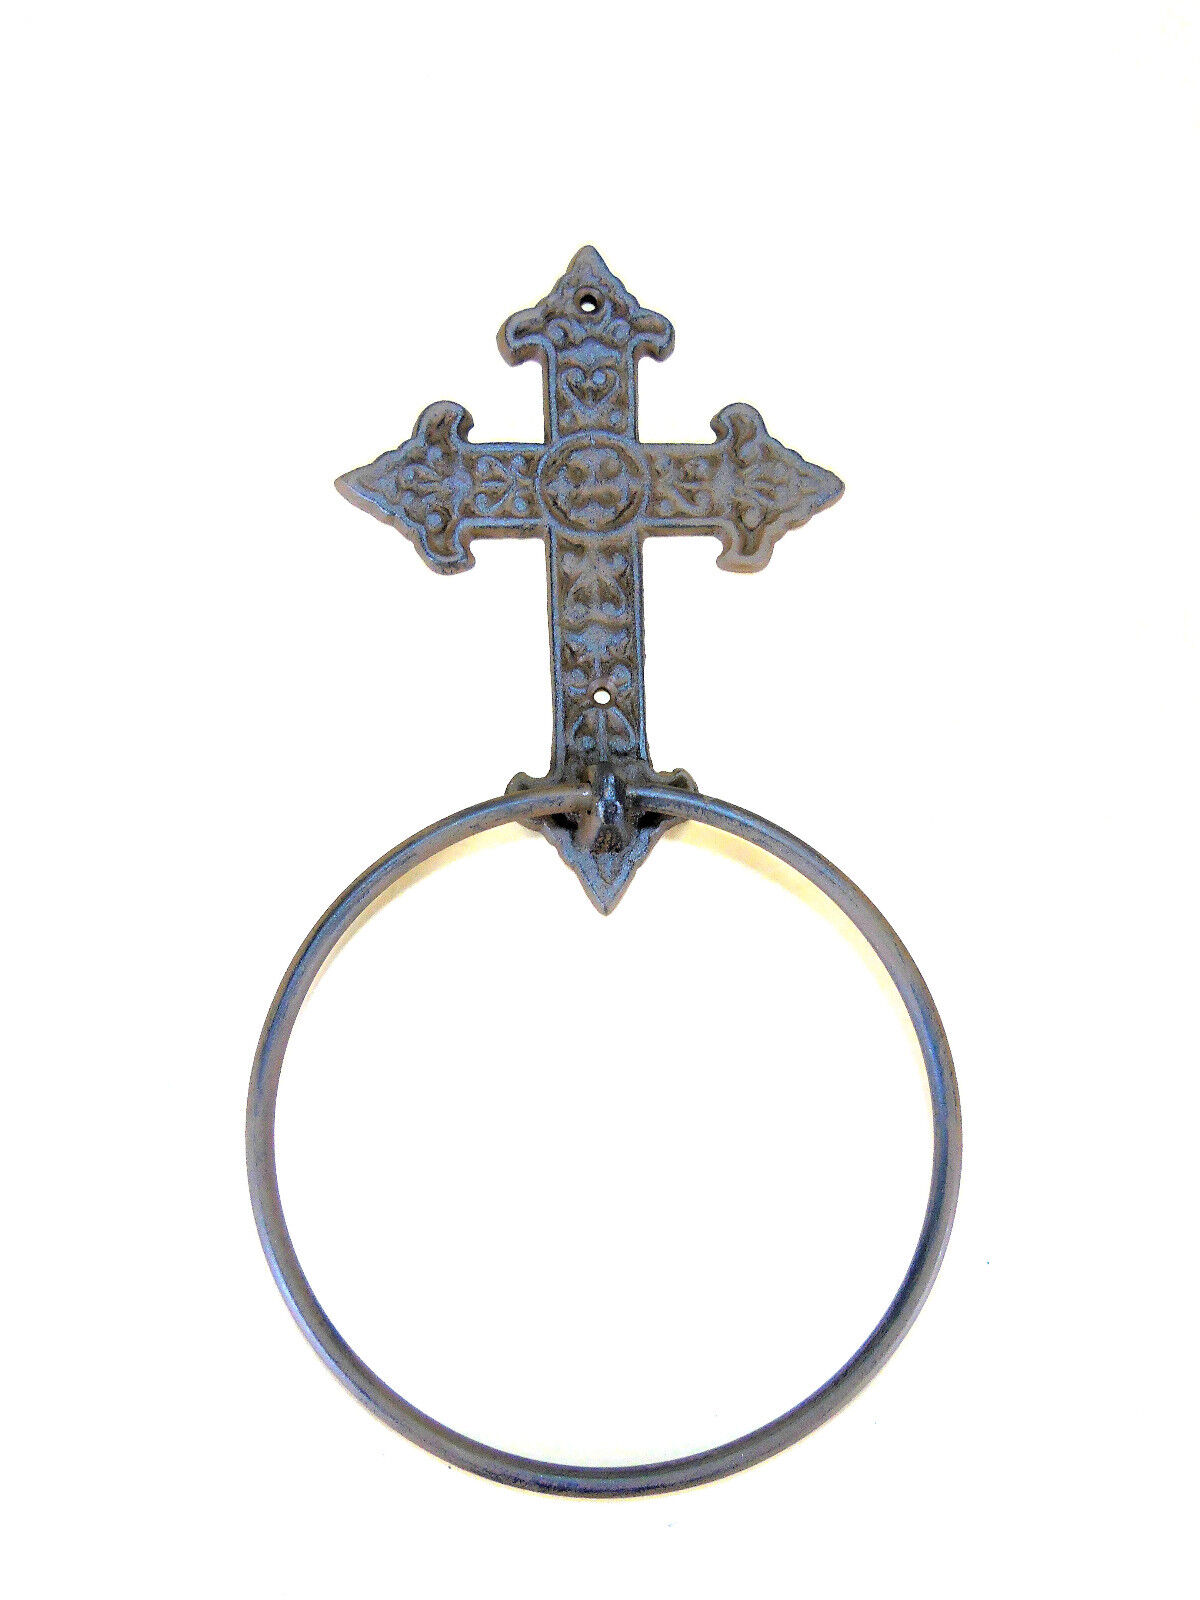 "Cast Iron Cross Towel Ring 6"" Bath Kitchen Wall Rustic Gothi"